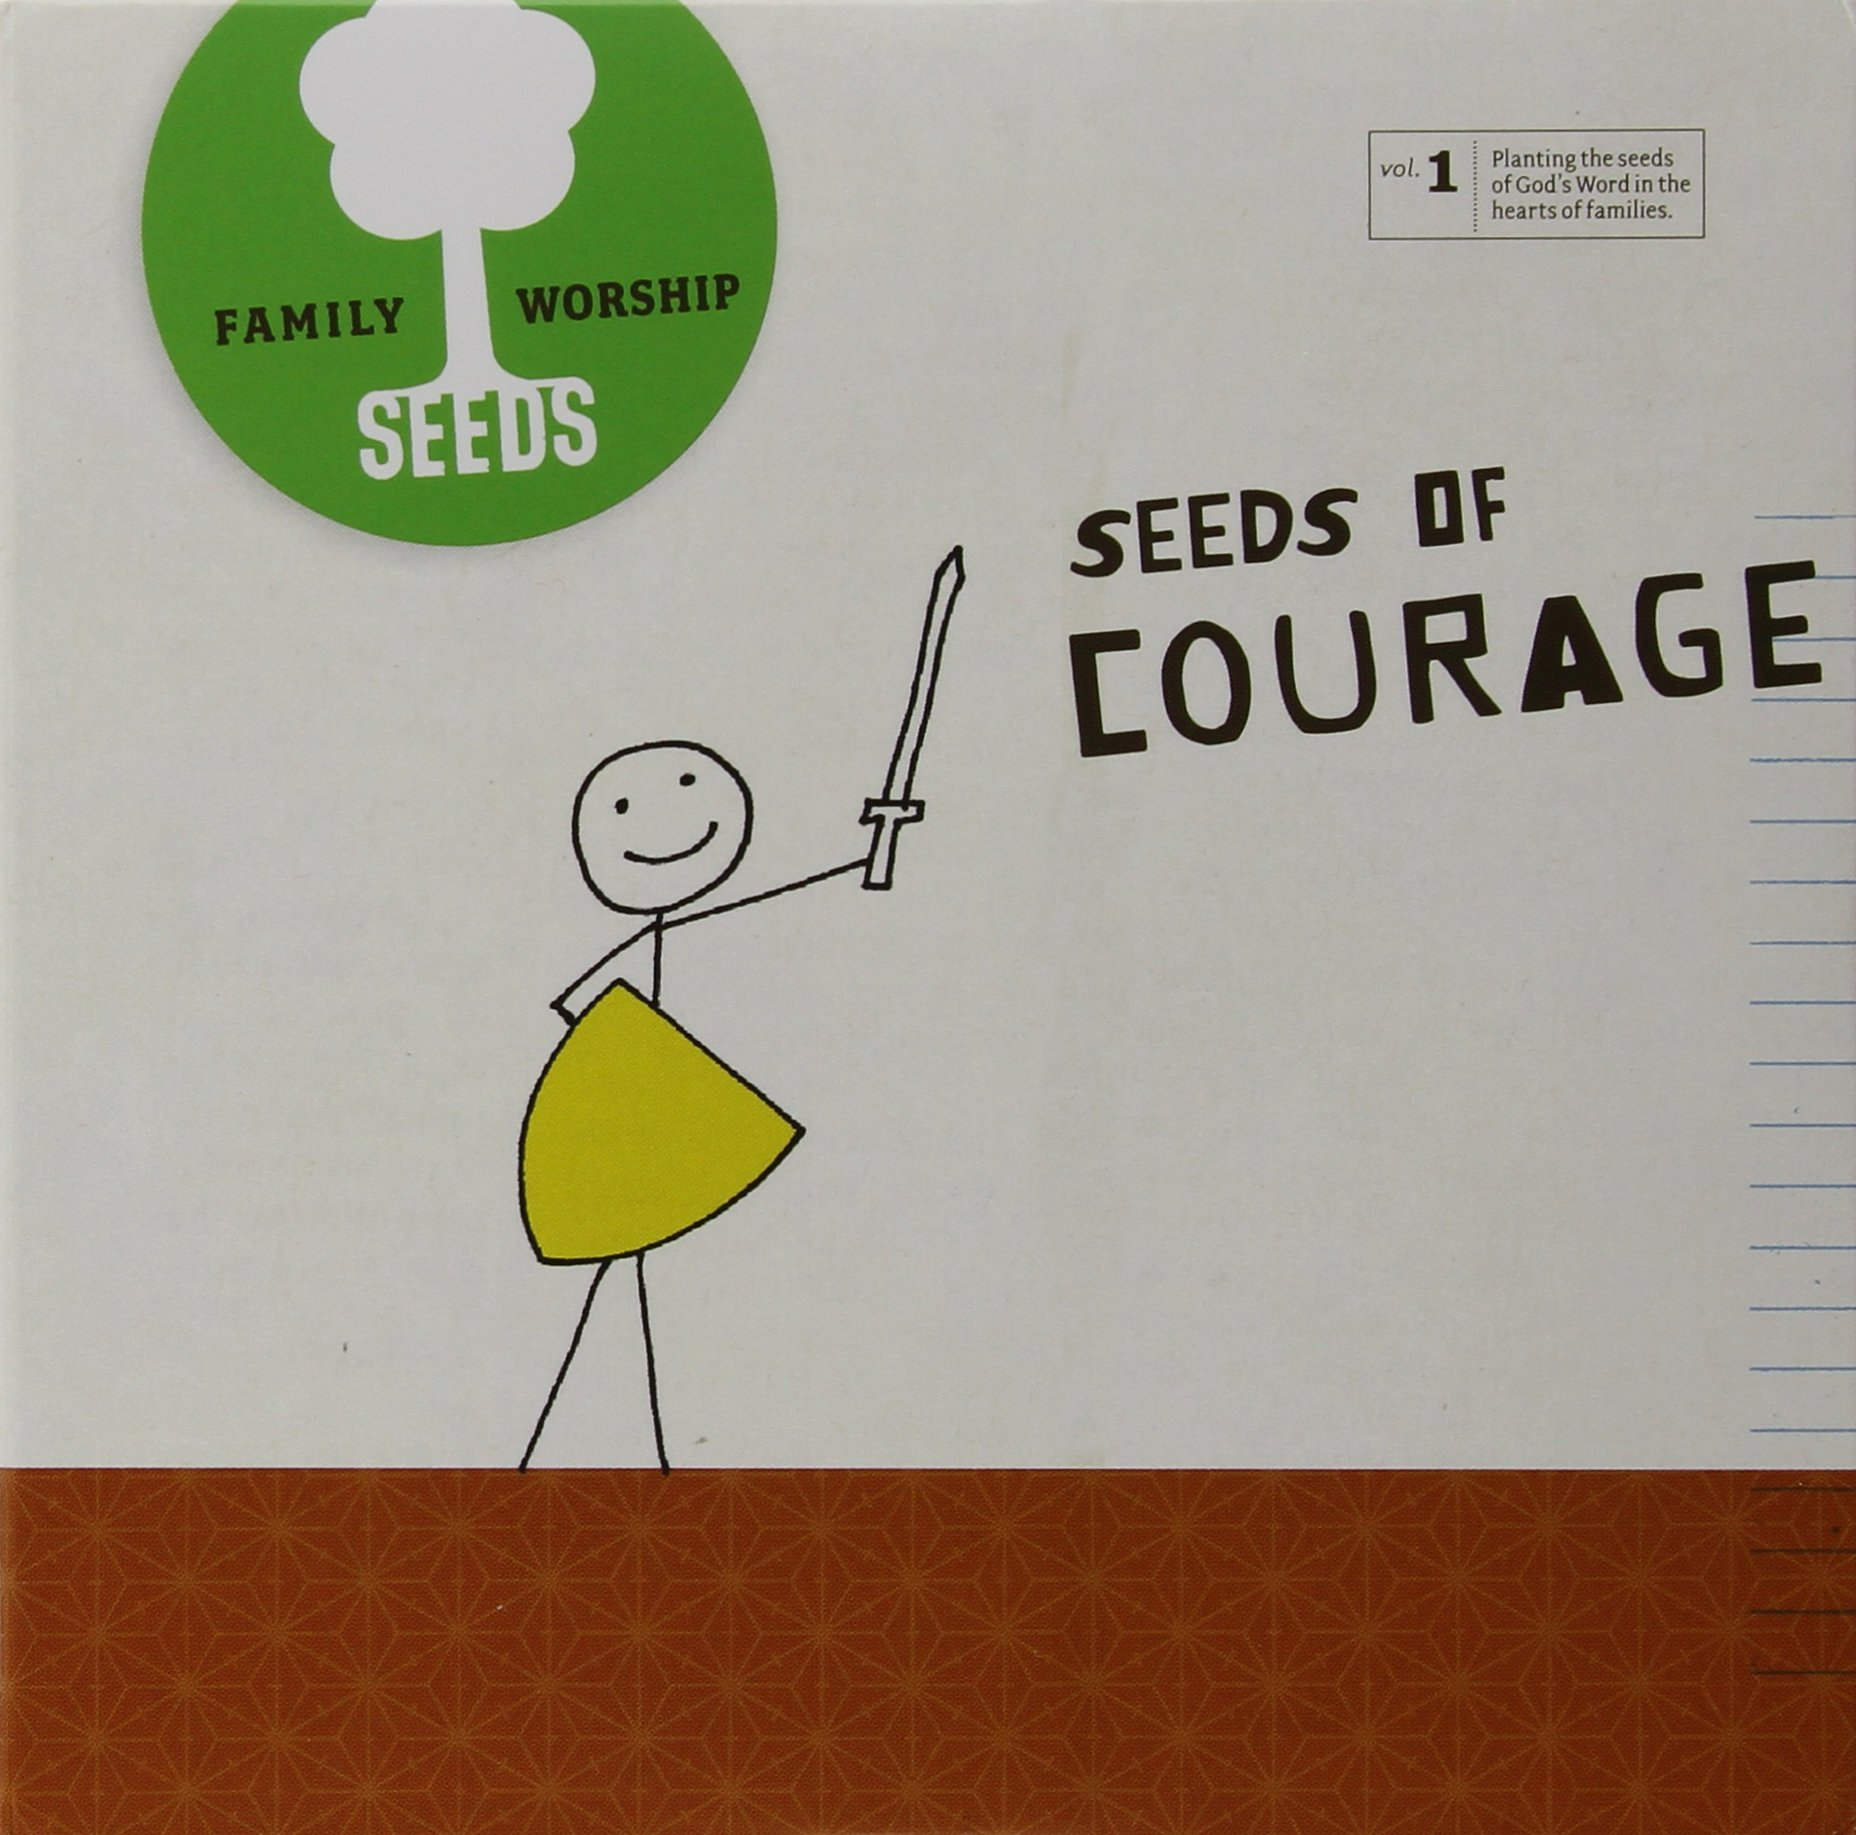 Seeds Family Worship: Seeds of Courage, Vol. 1 by CD Baby